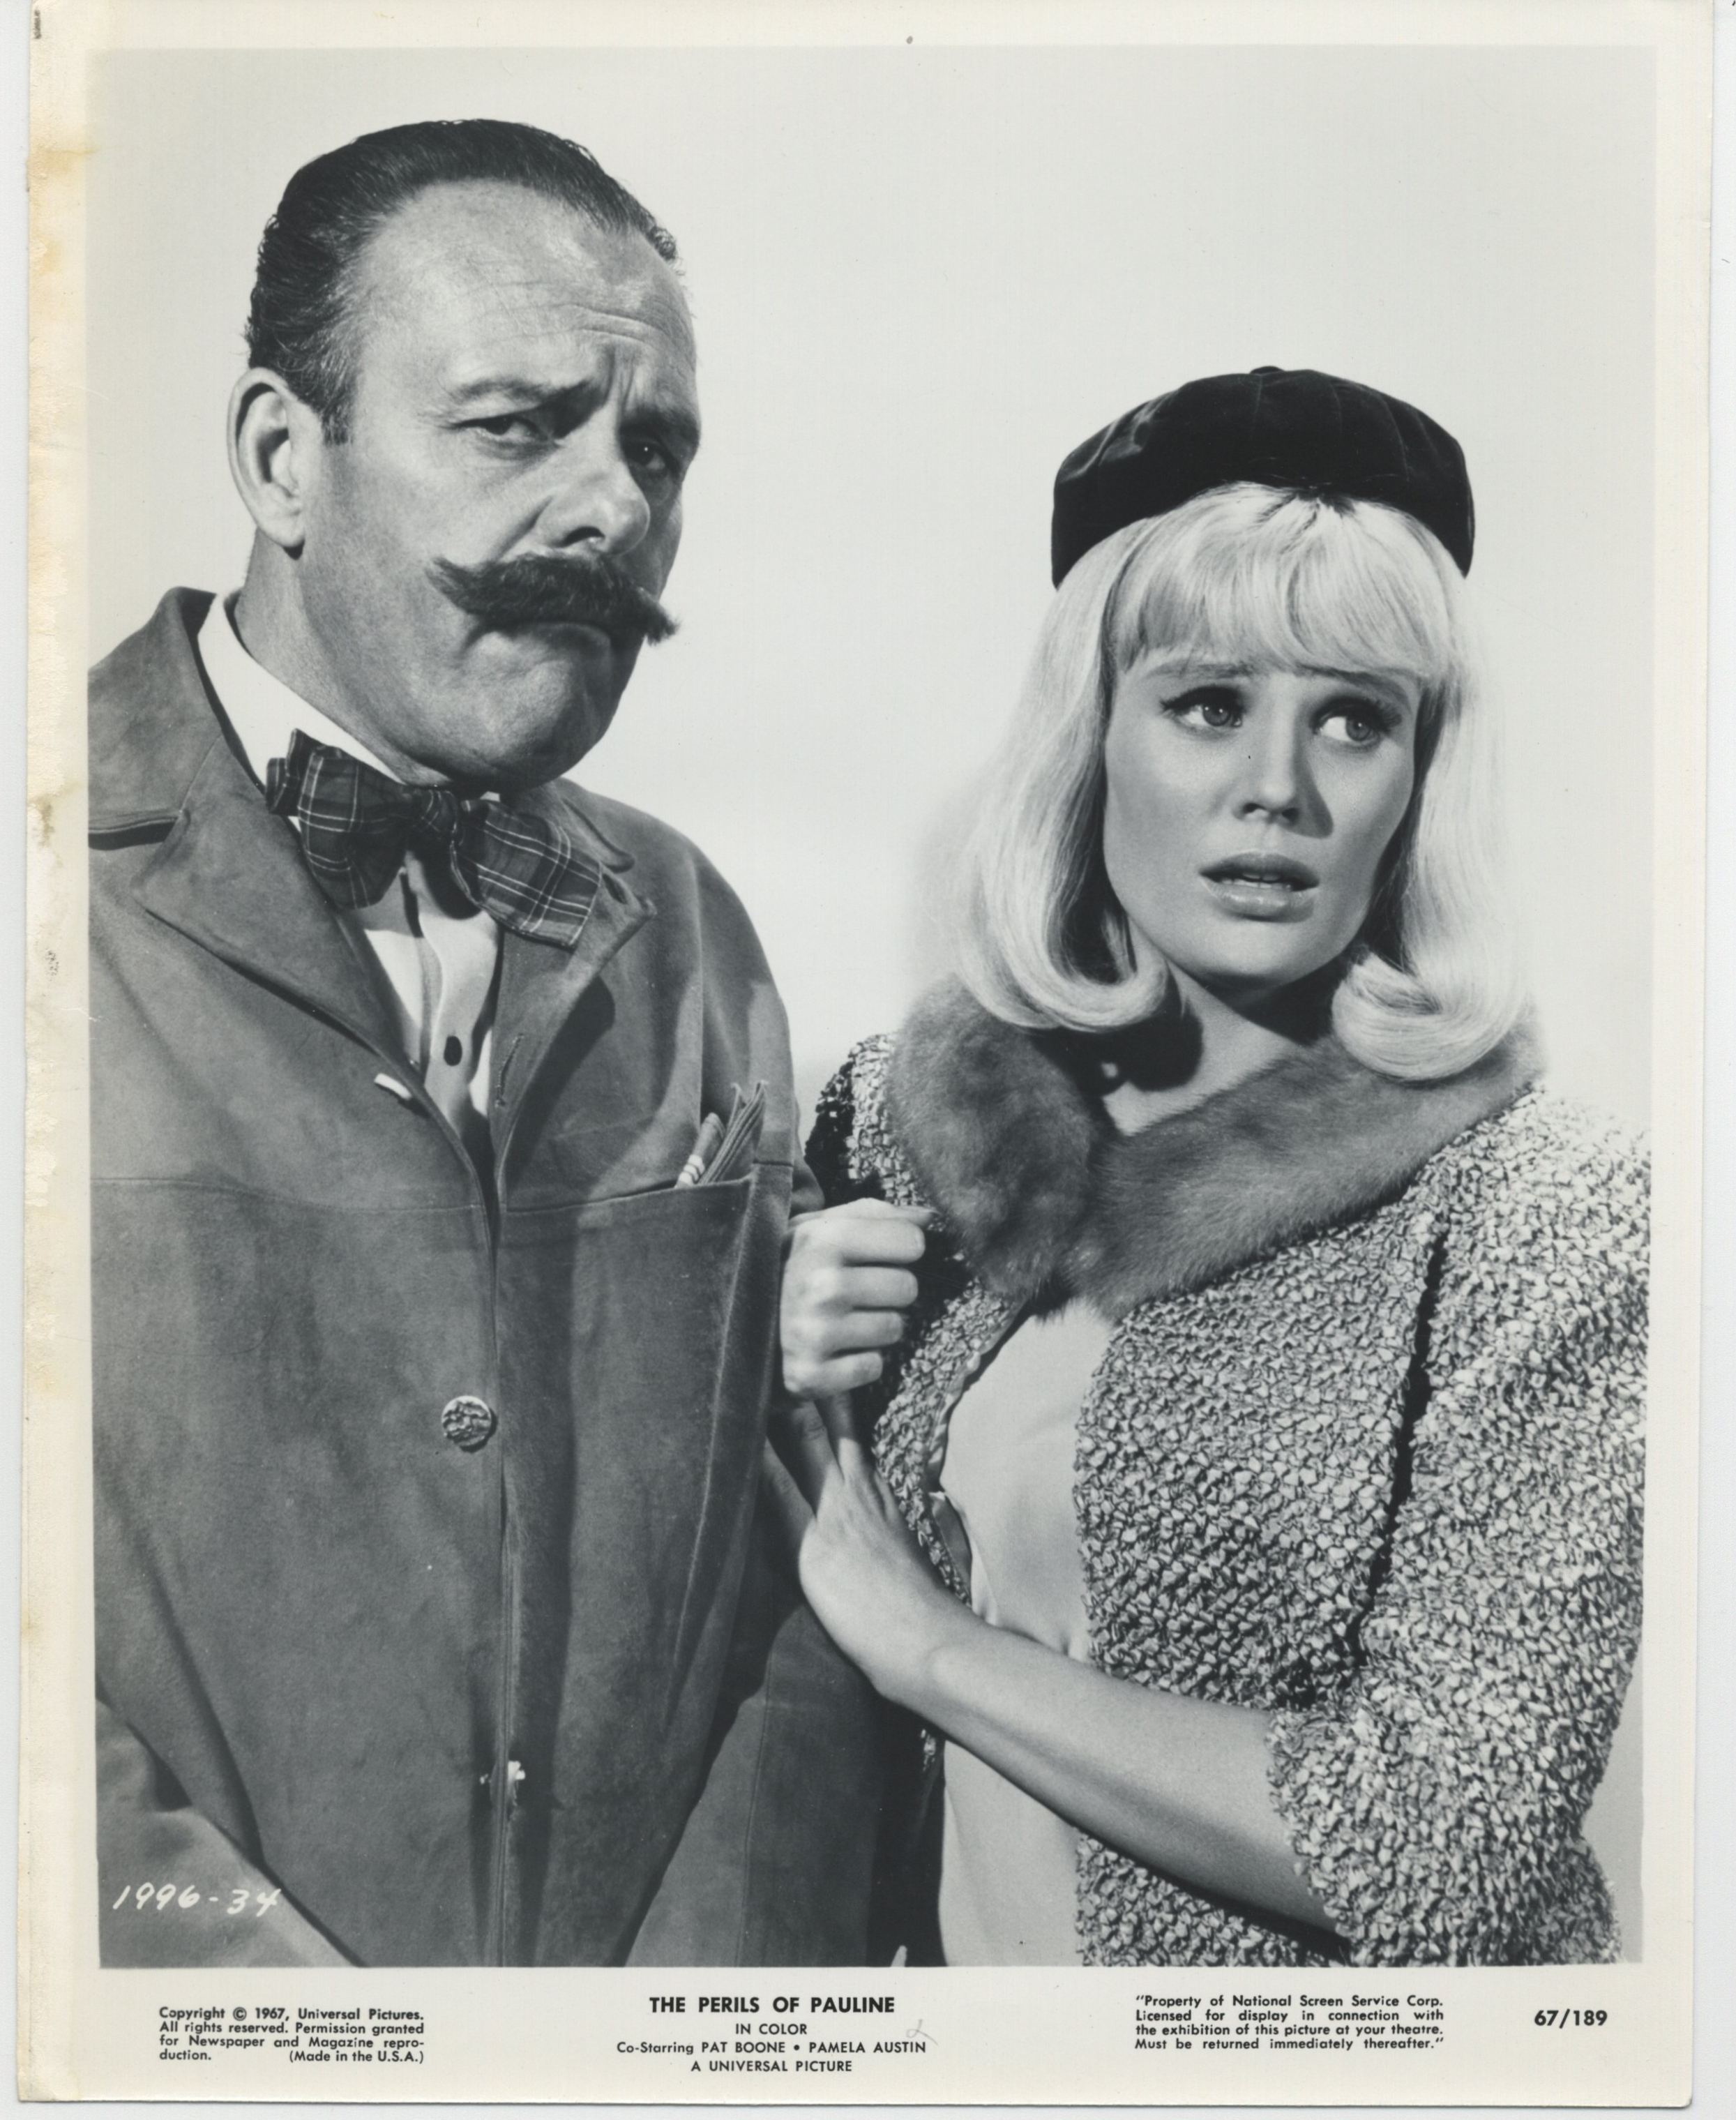 Pamela Austin and Terry-Thomas in The Perils of Pauline (1967)